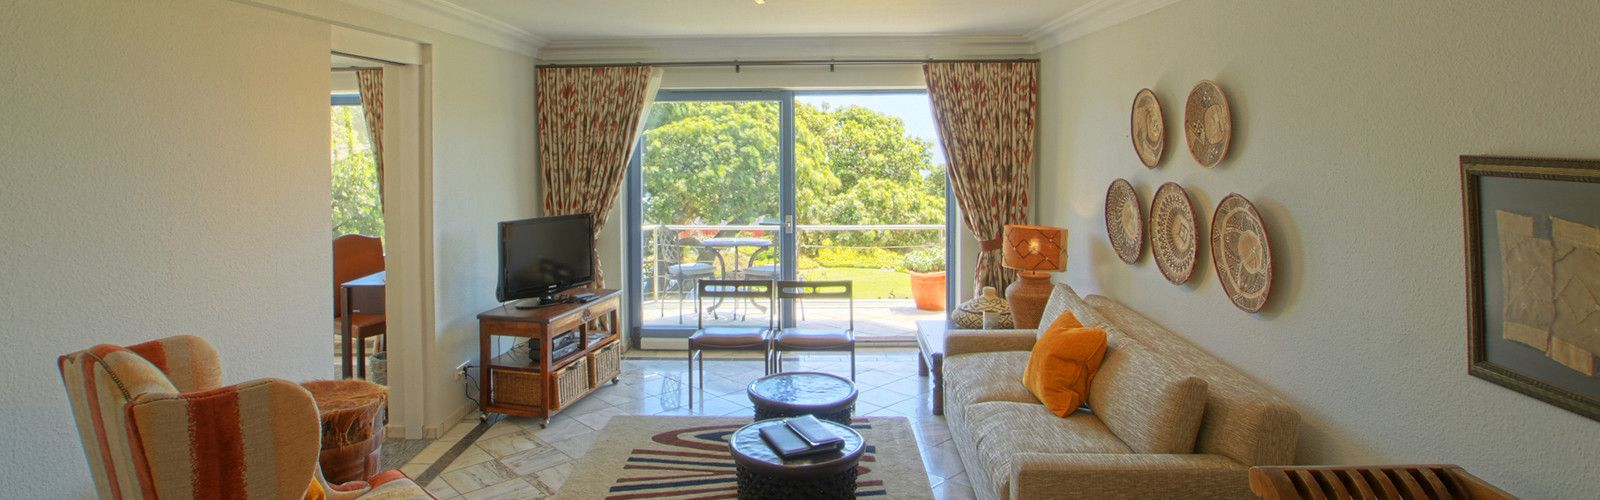 milkwood suite ocean view house